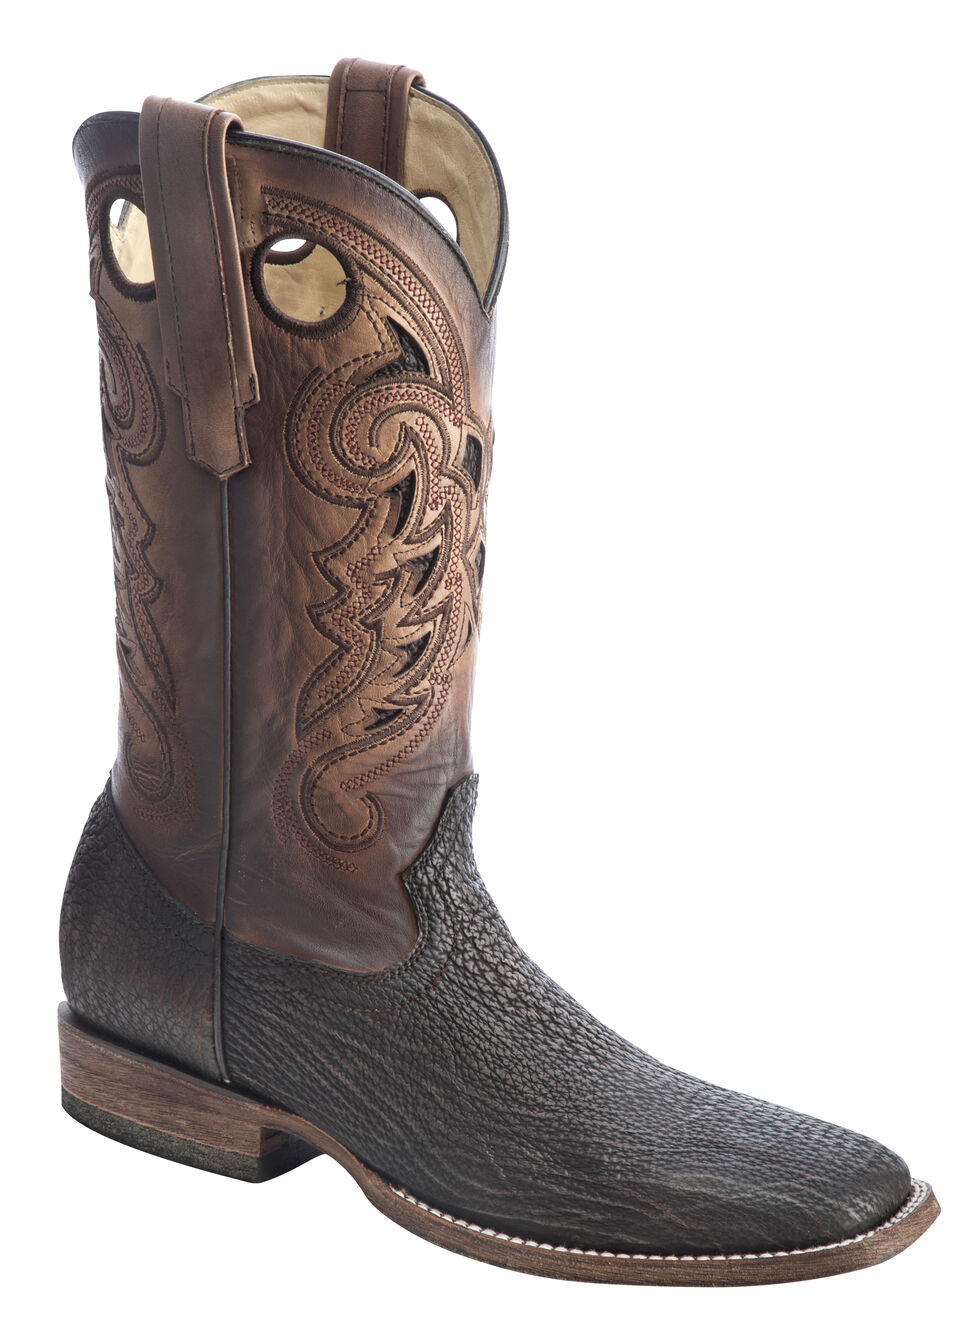 Corral Shark Vamp Cowboy Boots - Wide Square Toe, Brown, hi-res